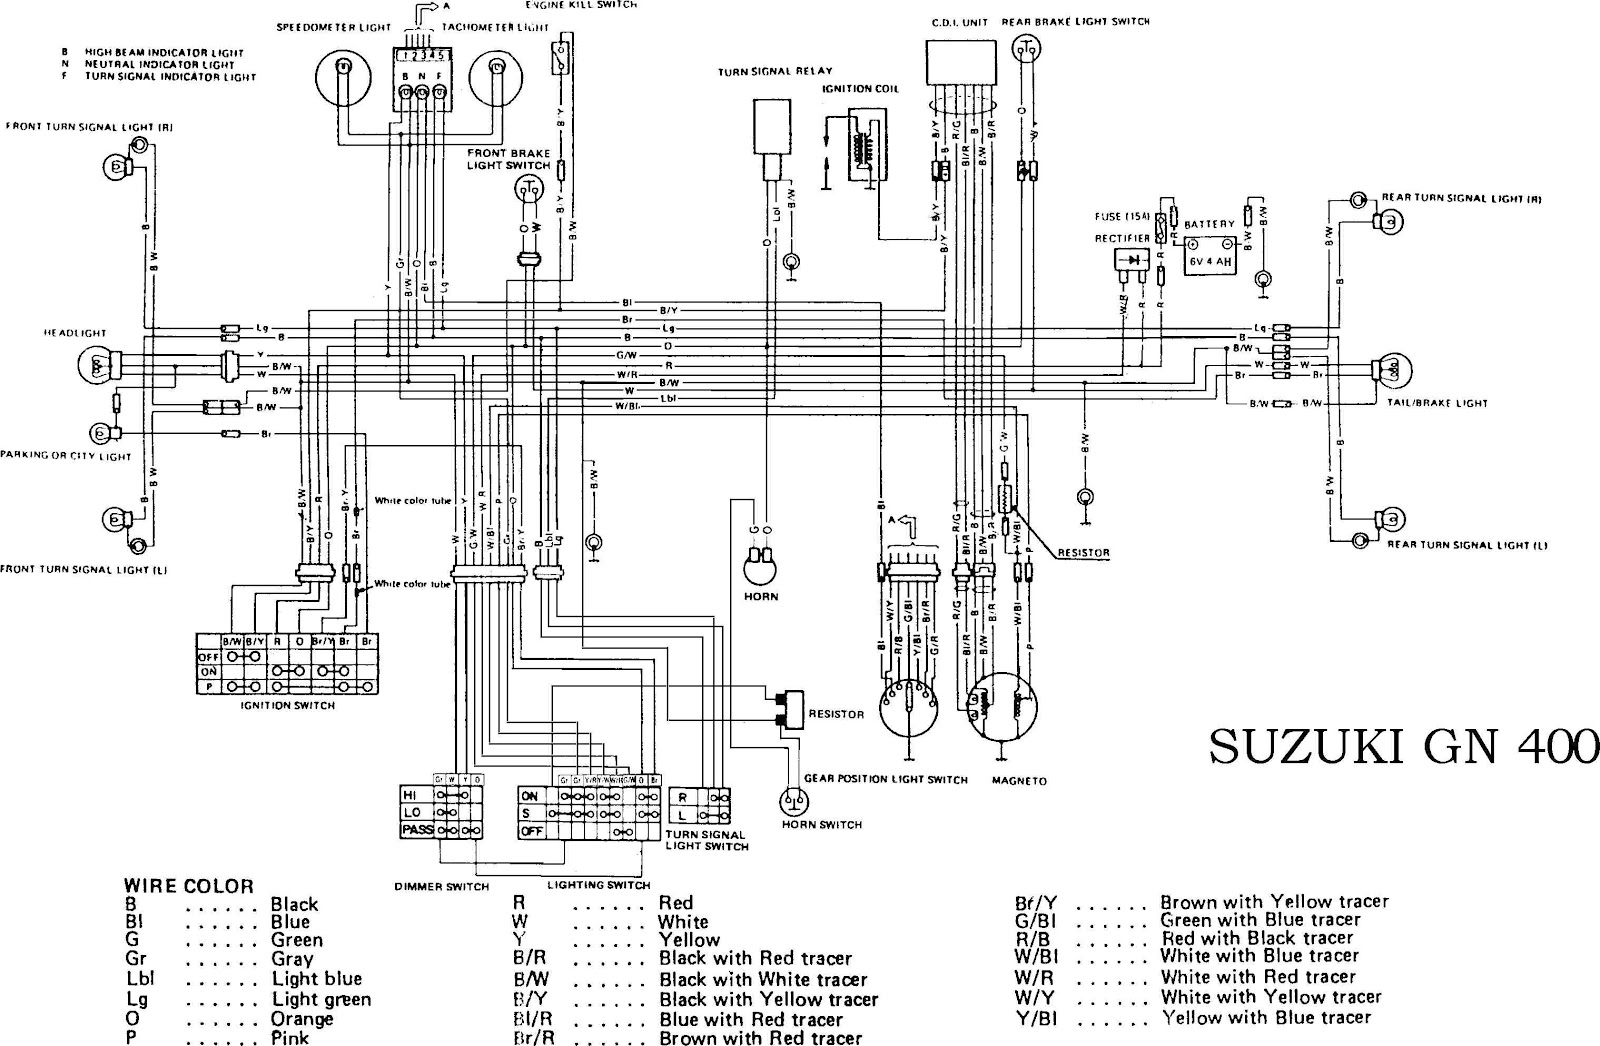 1995 acura integra turn signal wiring diagram